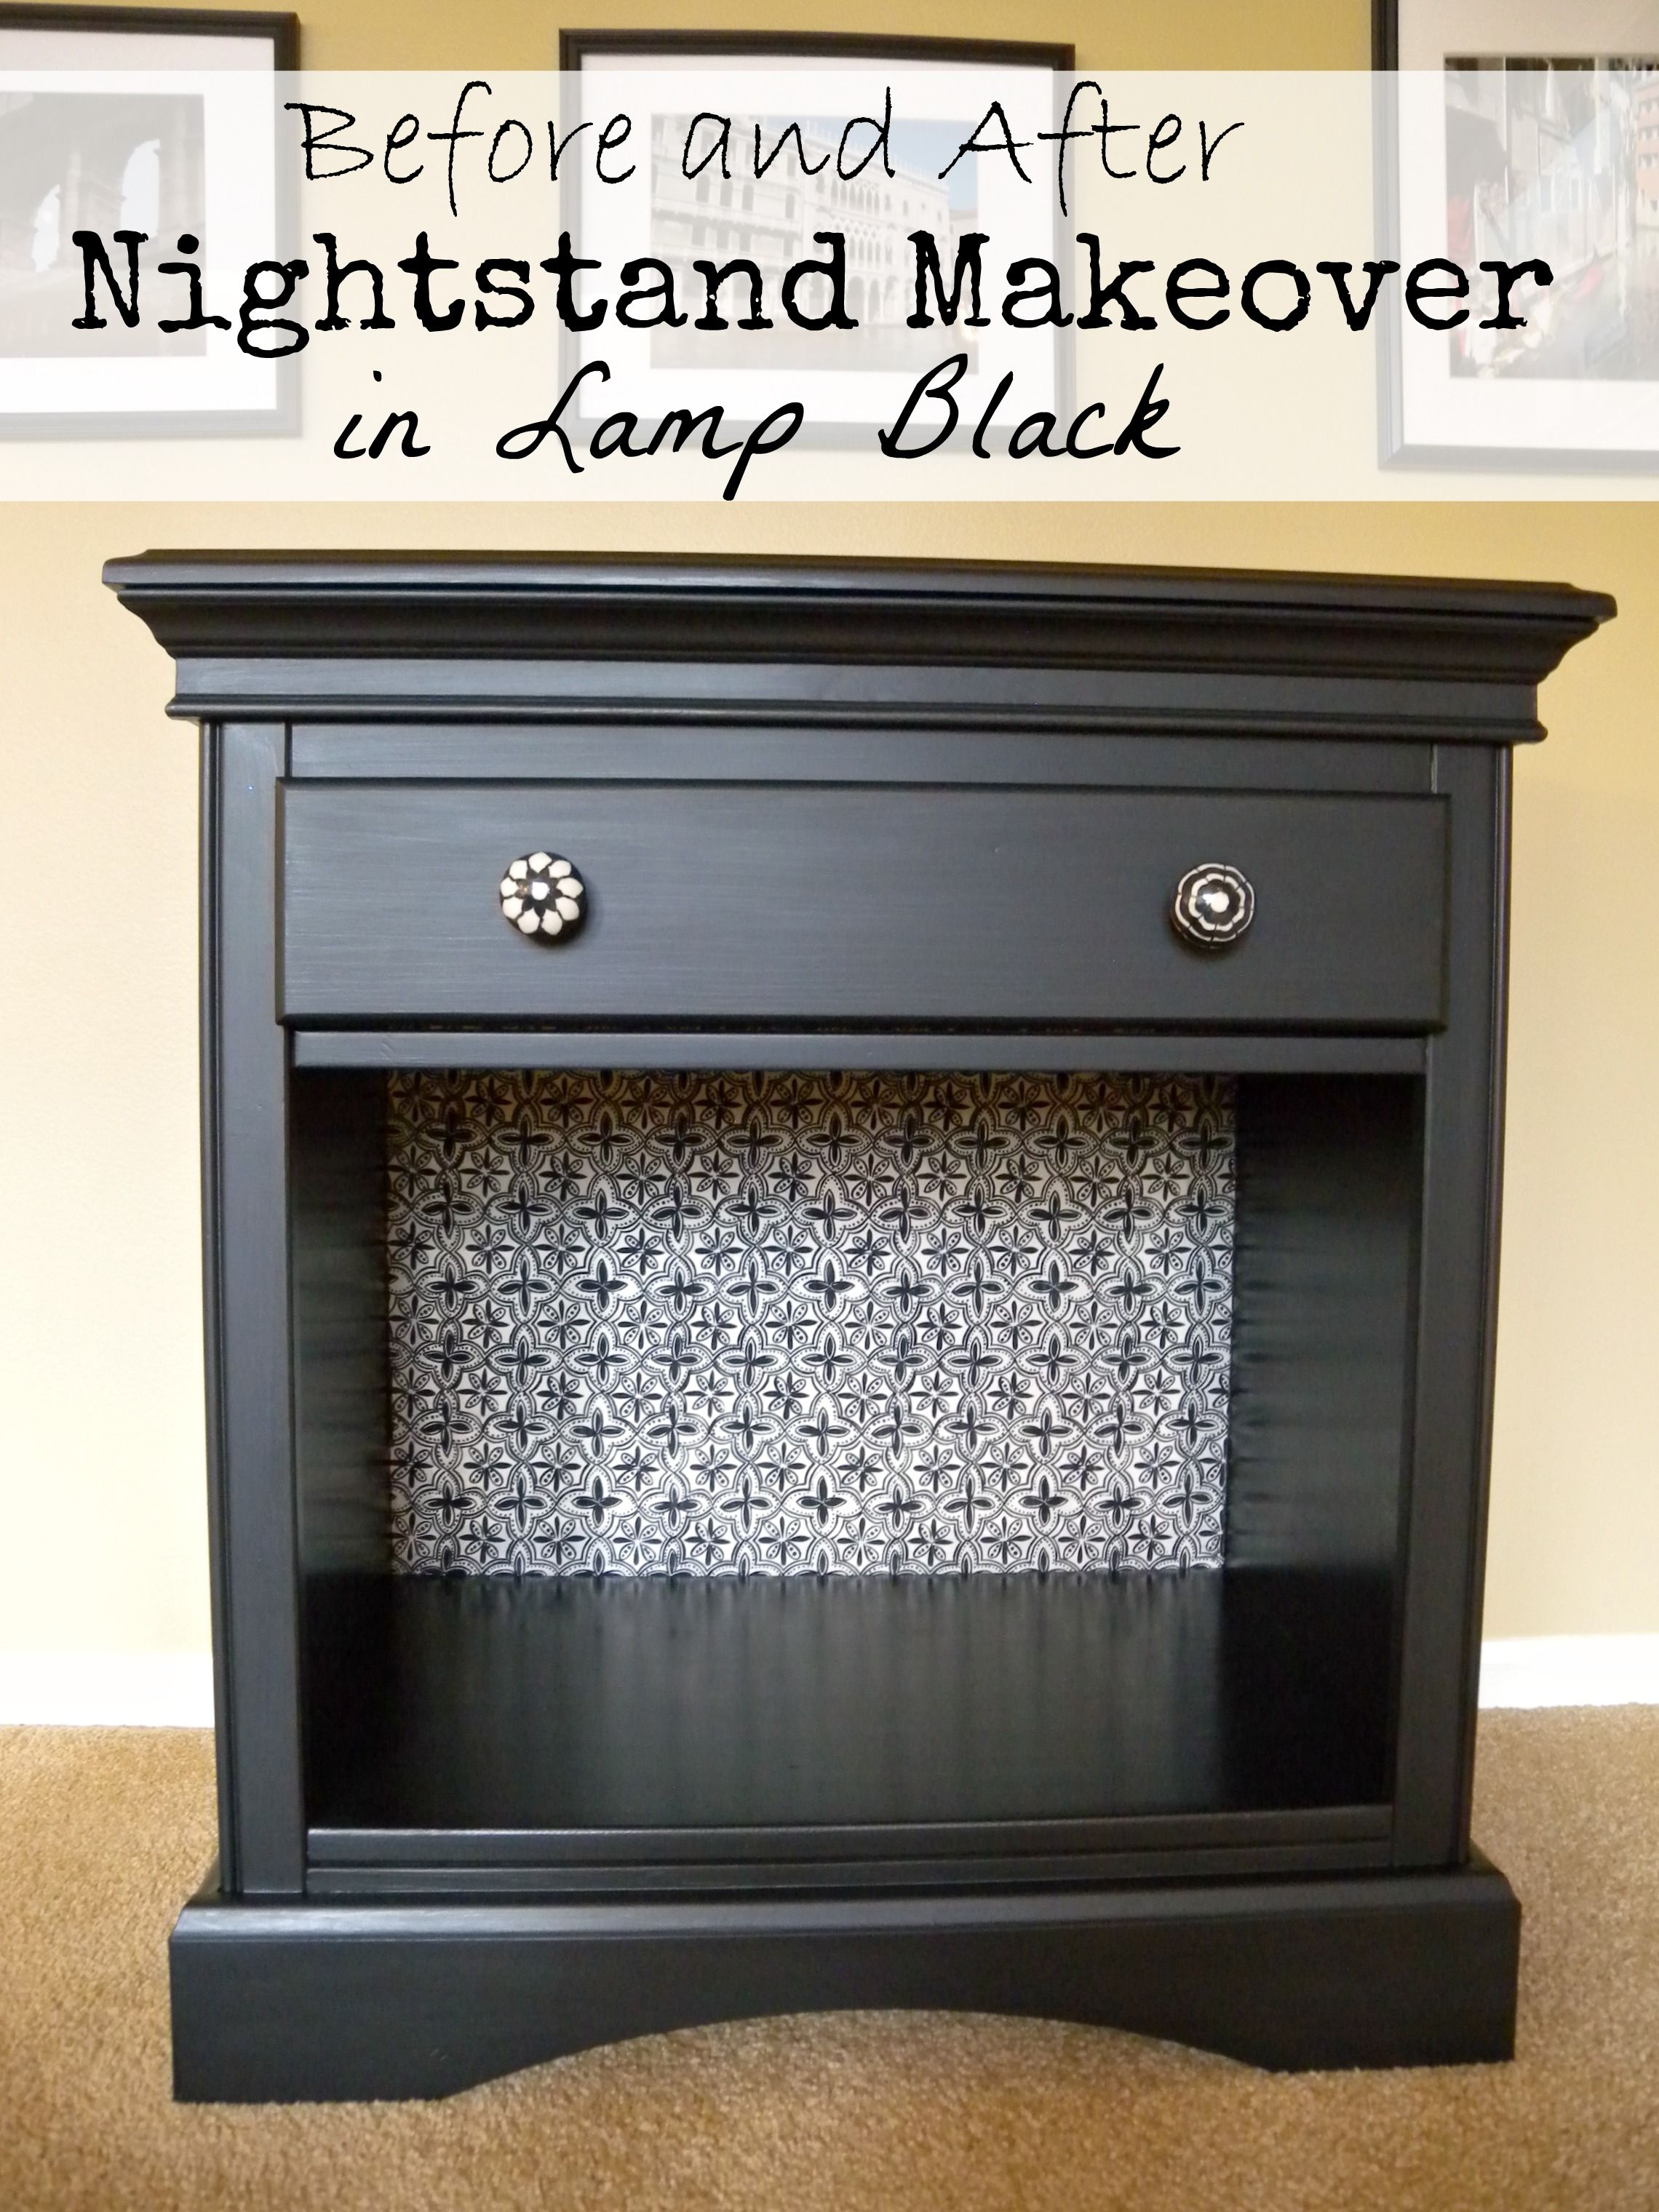 Before And After Nightstand Makeover In Lamp Black Craft